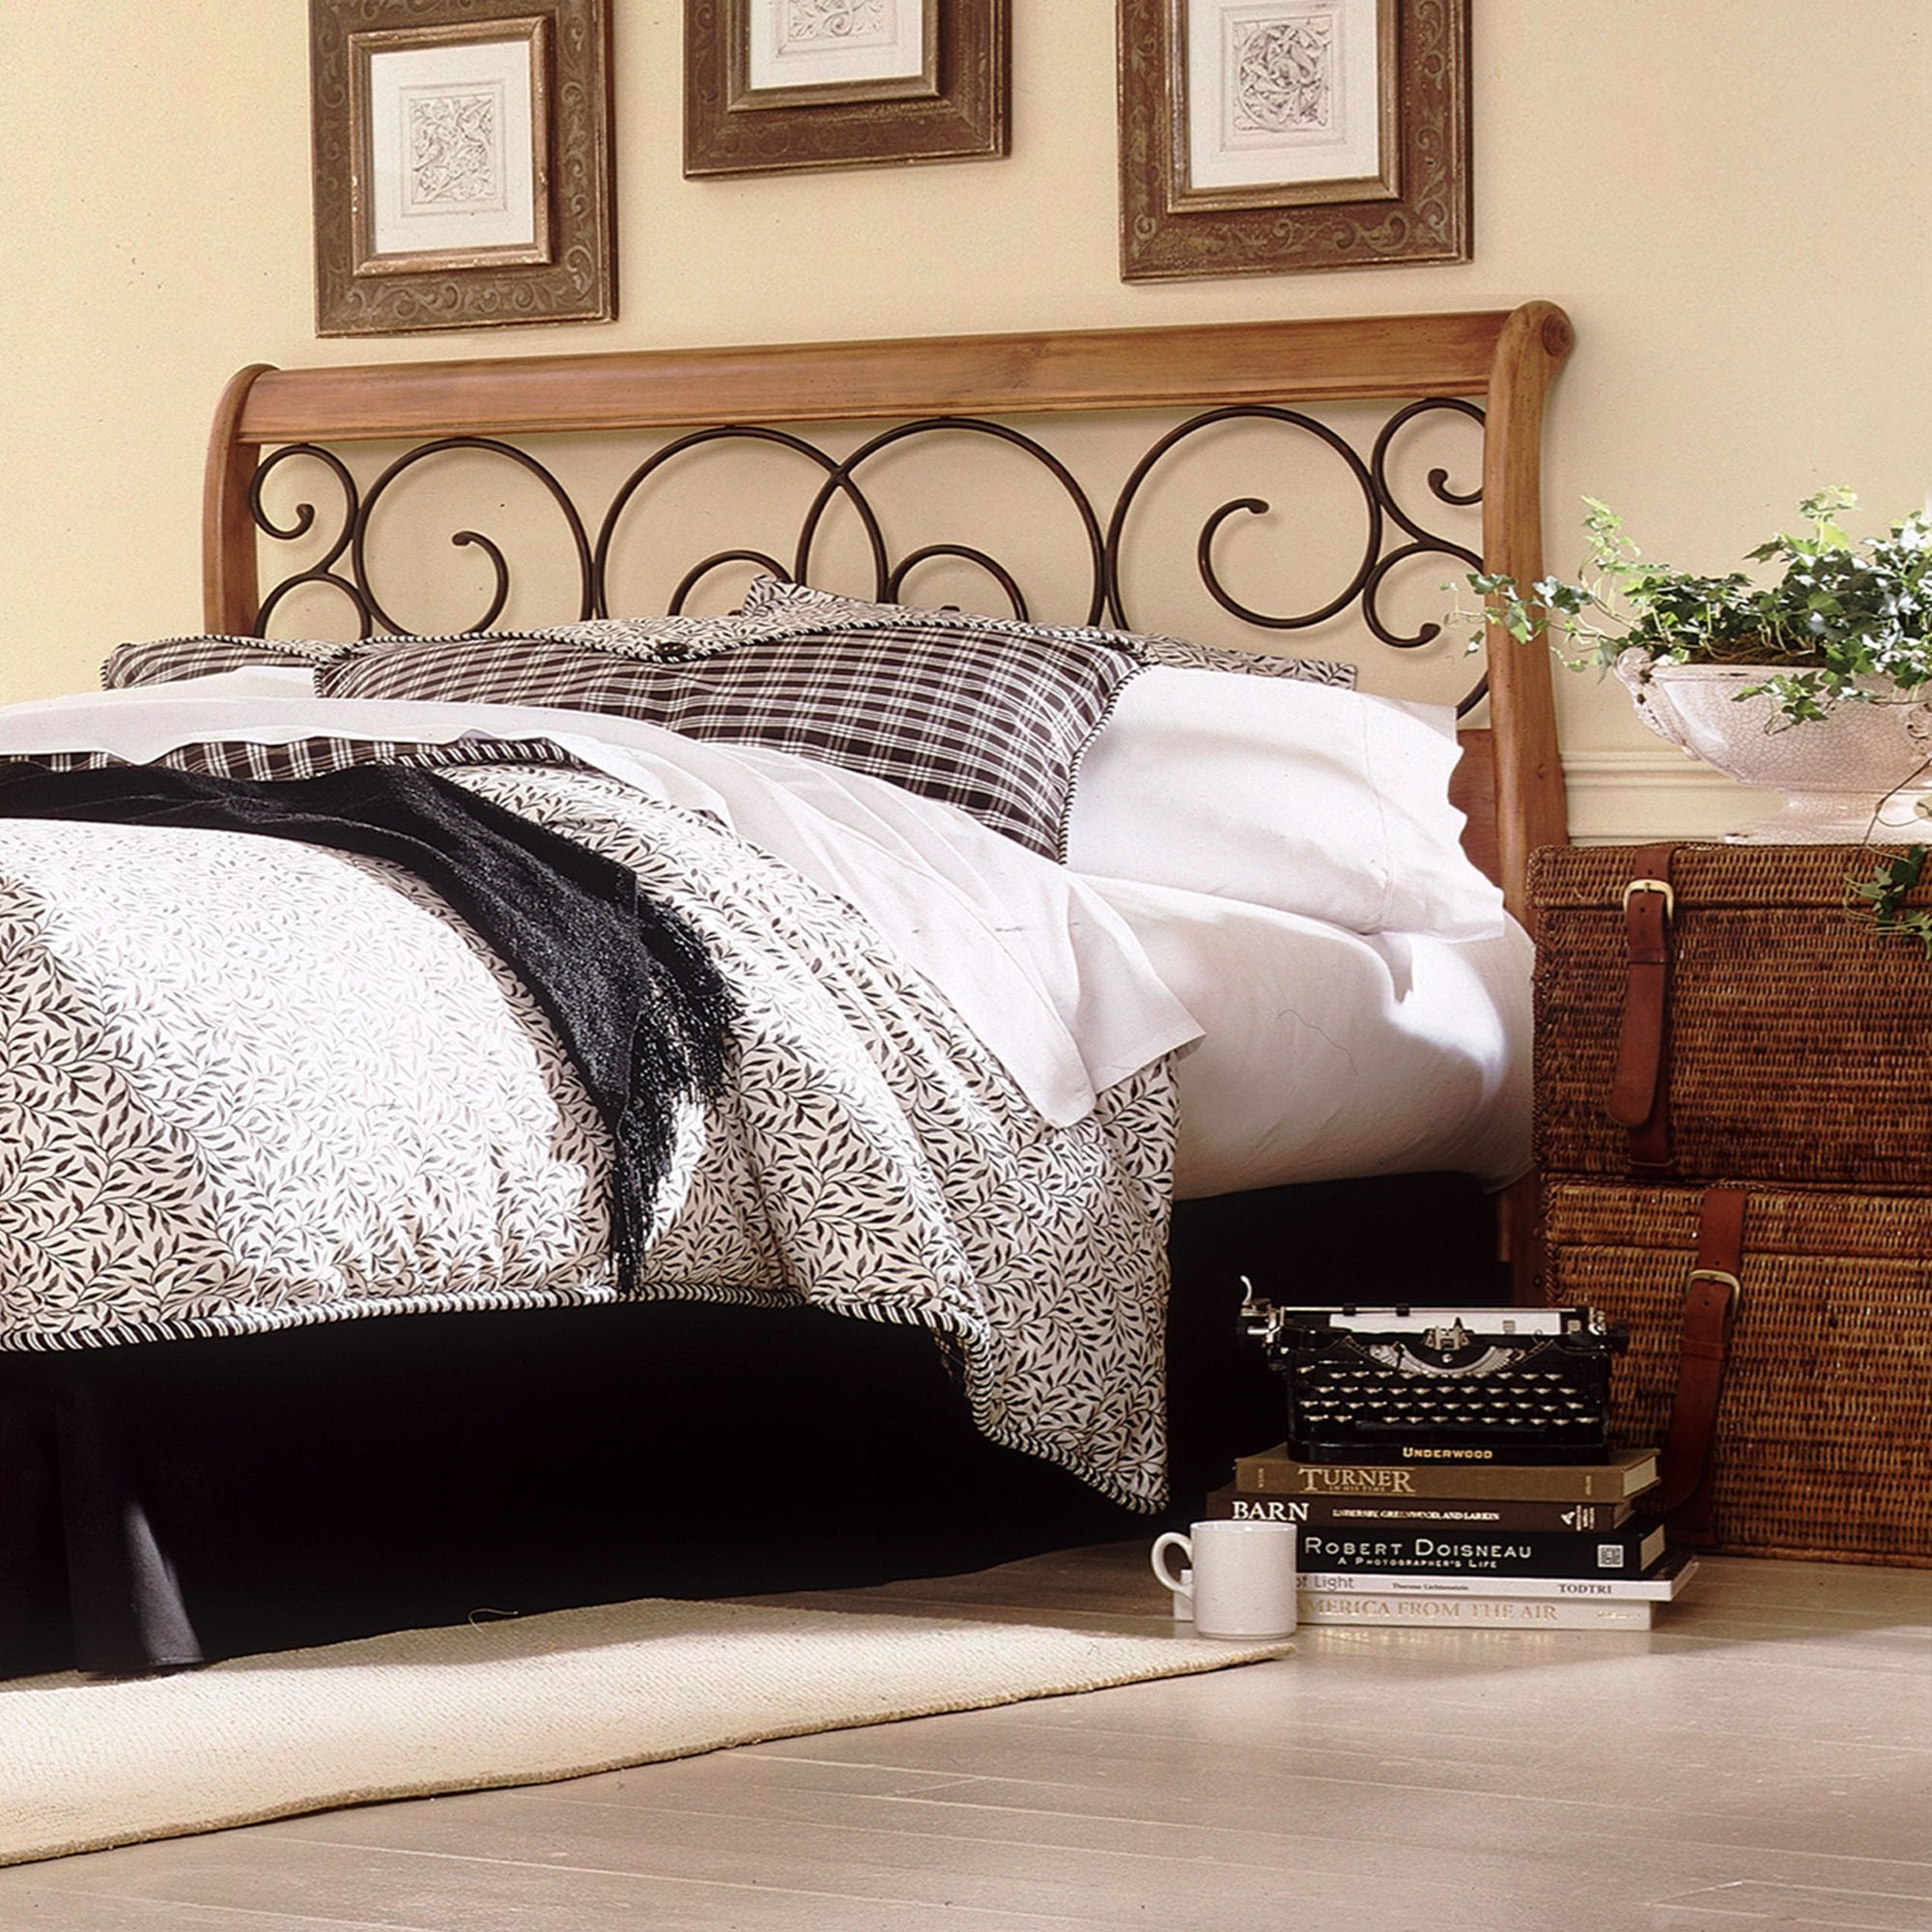 Fashion Bed Group Wood And Metal Beds B92d04 Full Dunhill